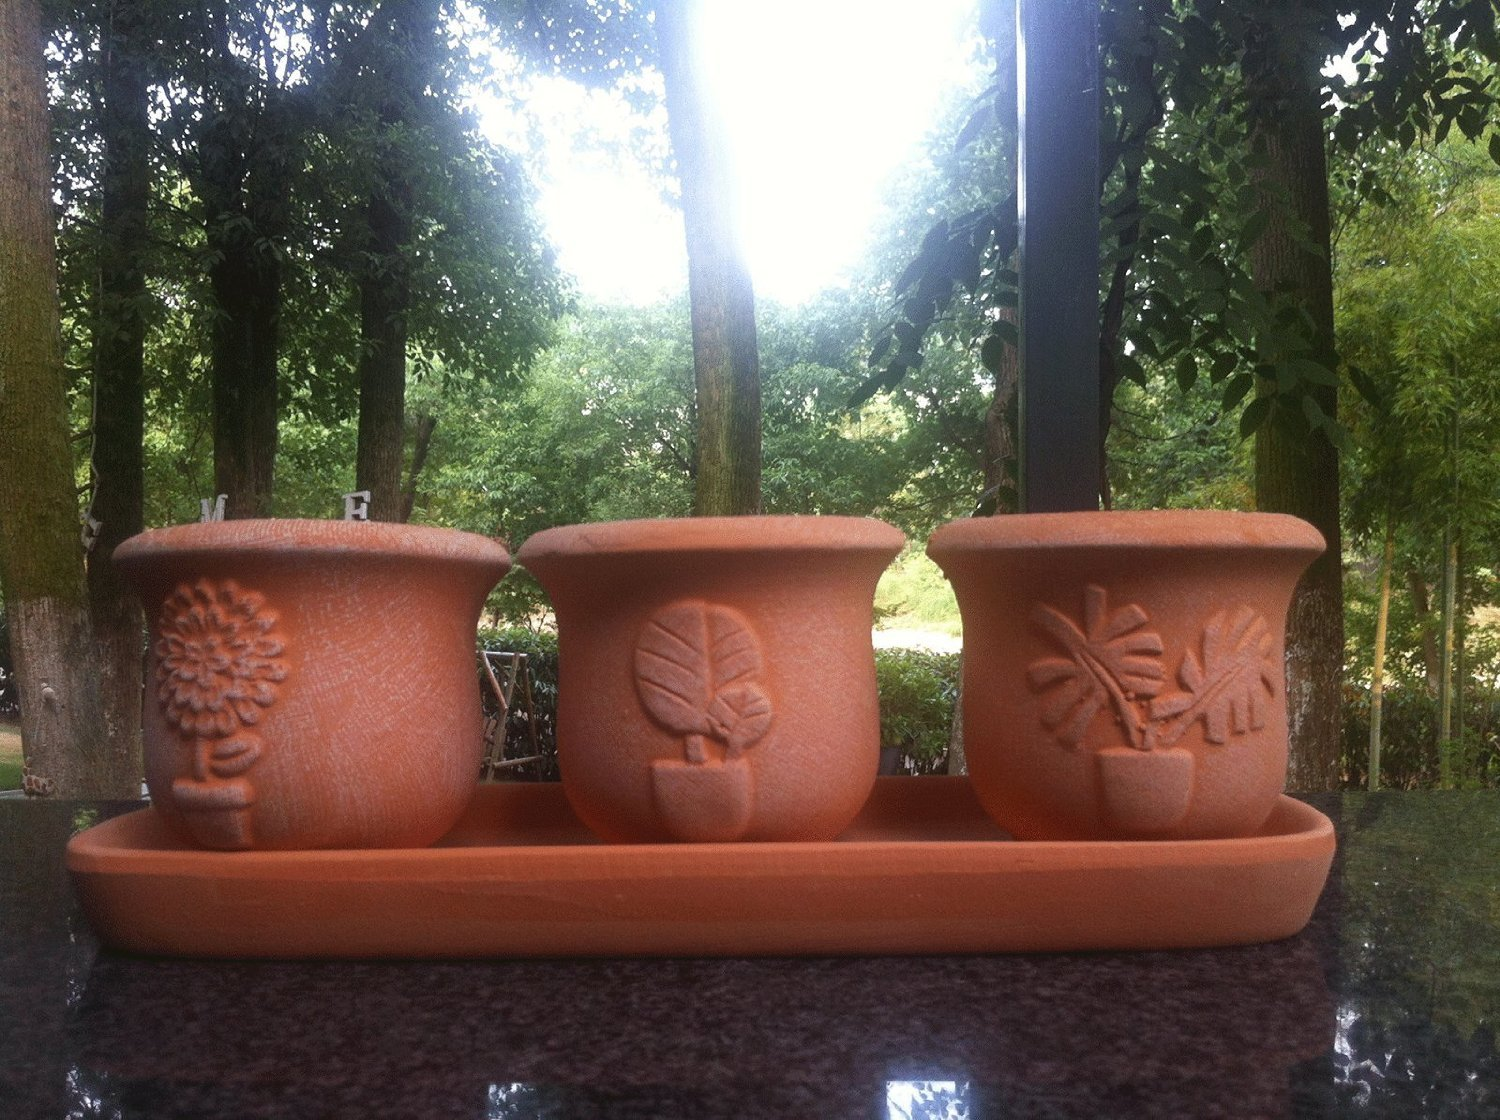 Terra Cotta Clay Set of 3 Small Embossed Earthenware Planters with Tray